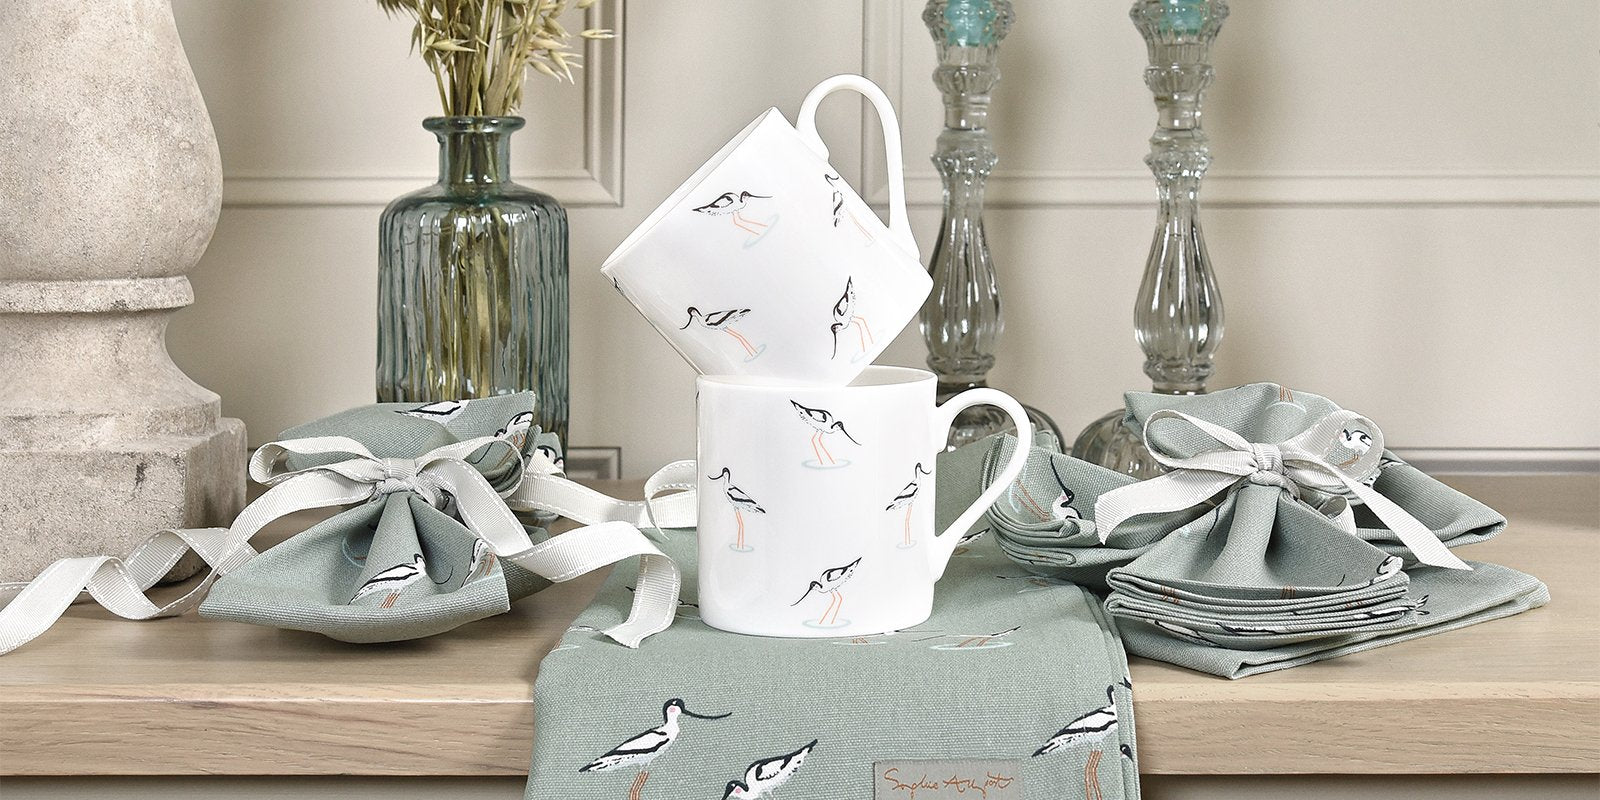 Coastal Birds range of homewares and accessories by Sophie Allport